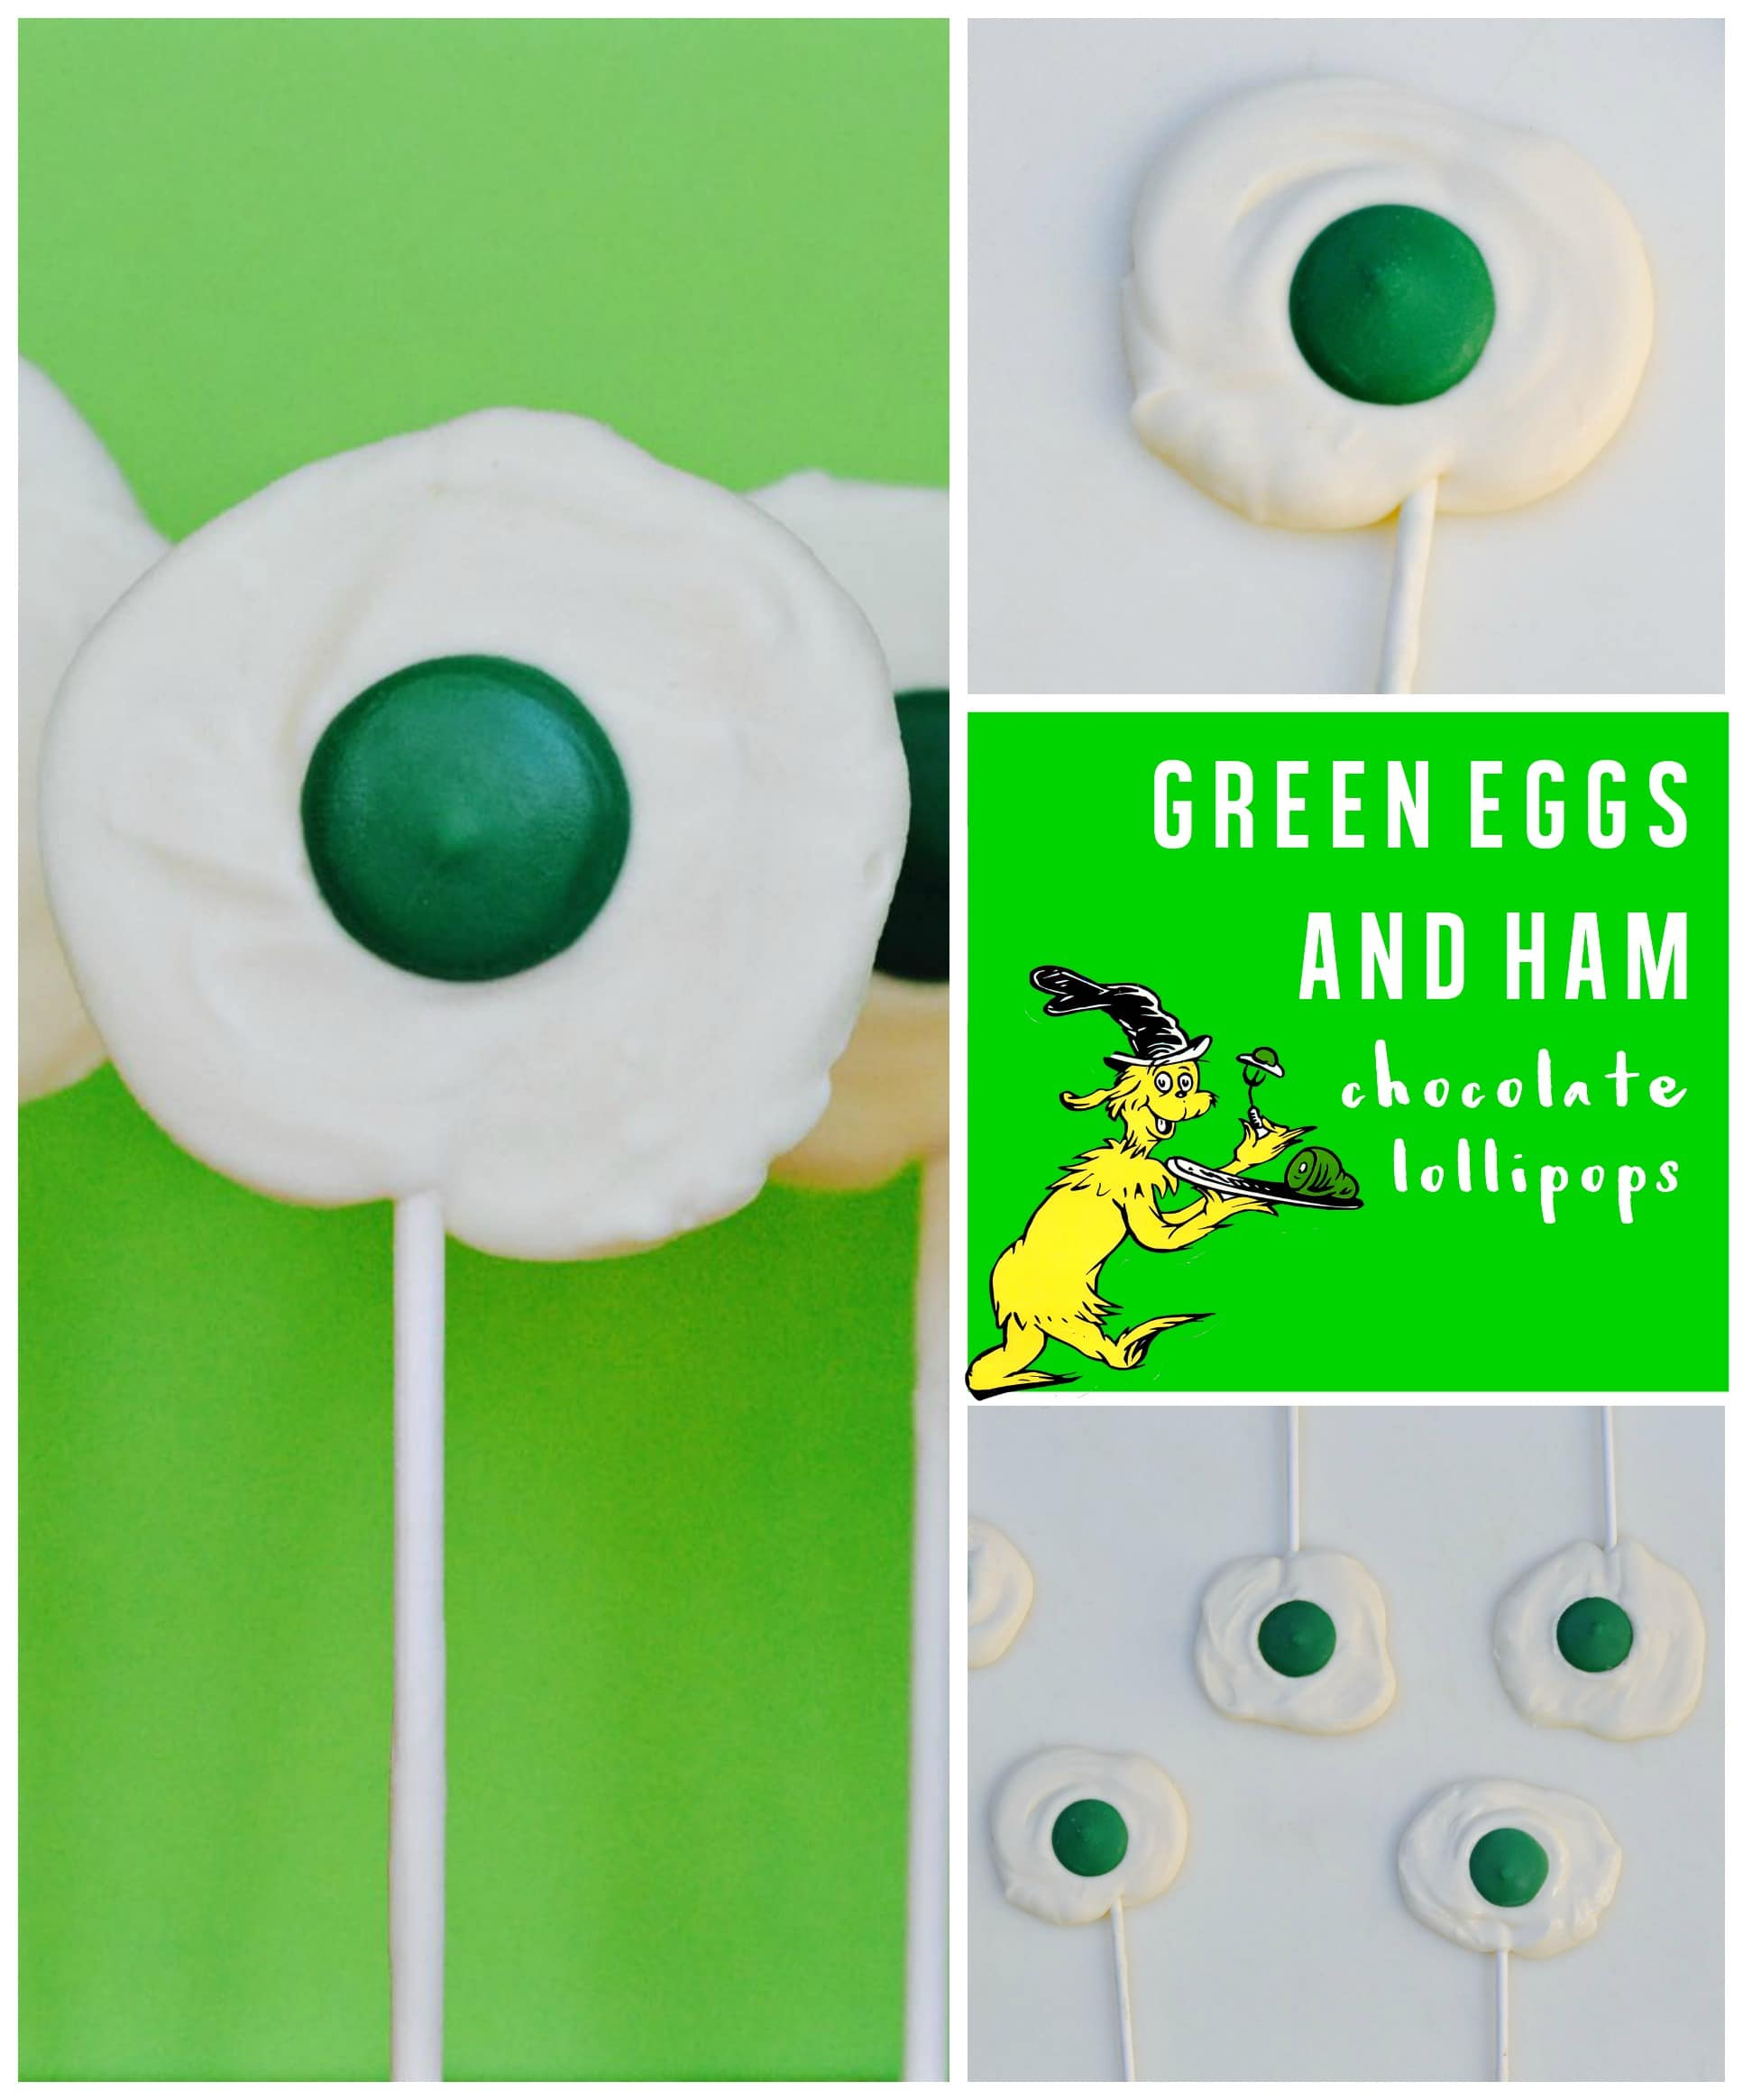 What's better than green eggs and ham? Green eggs and ham chocolate ...